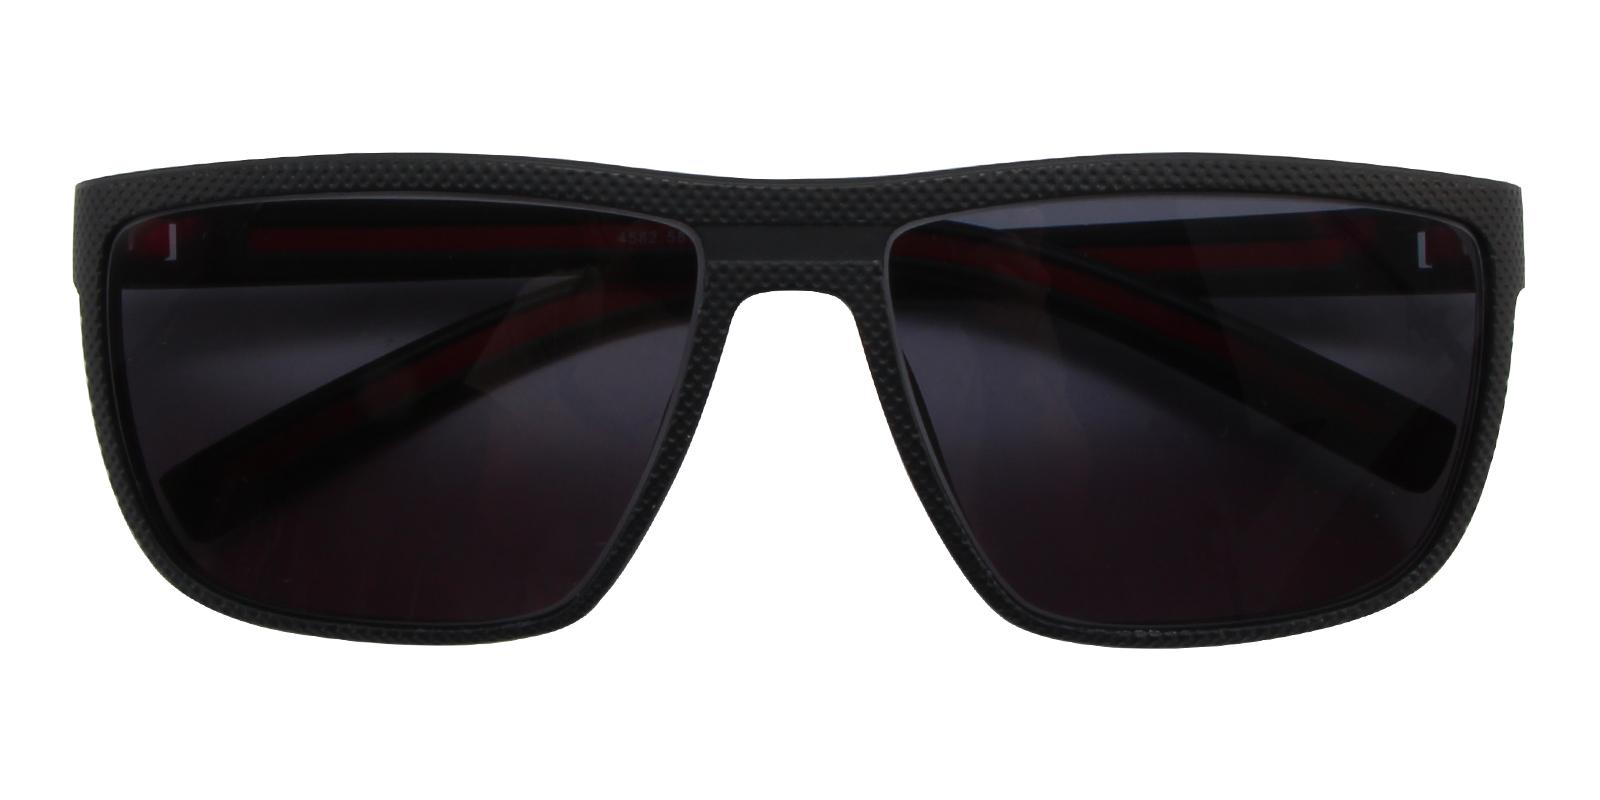 Tropic Black TR SpringHinges , Sunglasses , UniversalBridgeFit Frames from ABBE Glasses